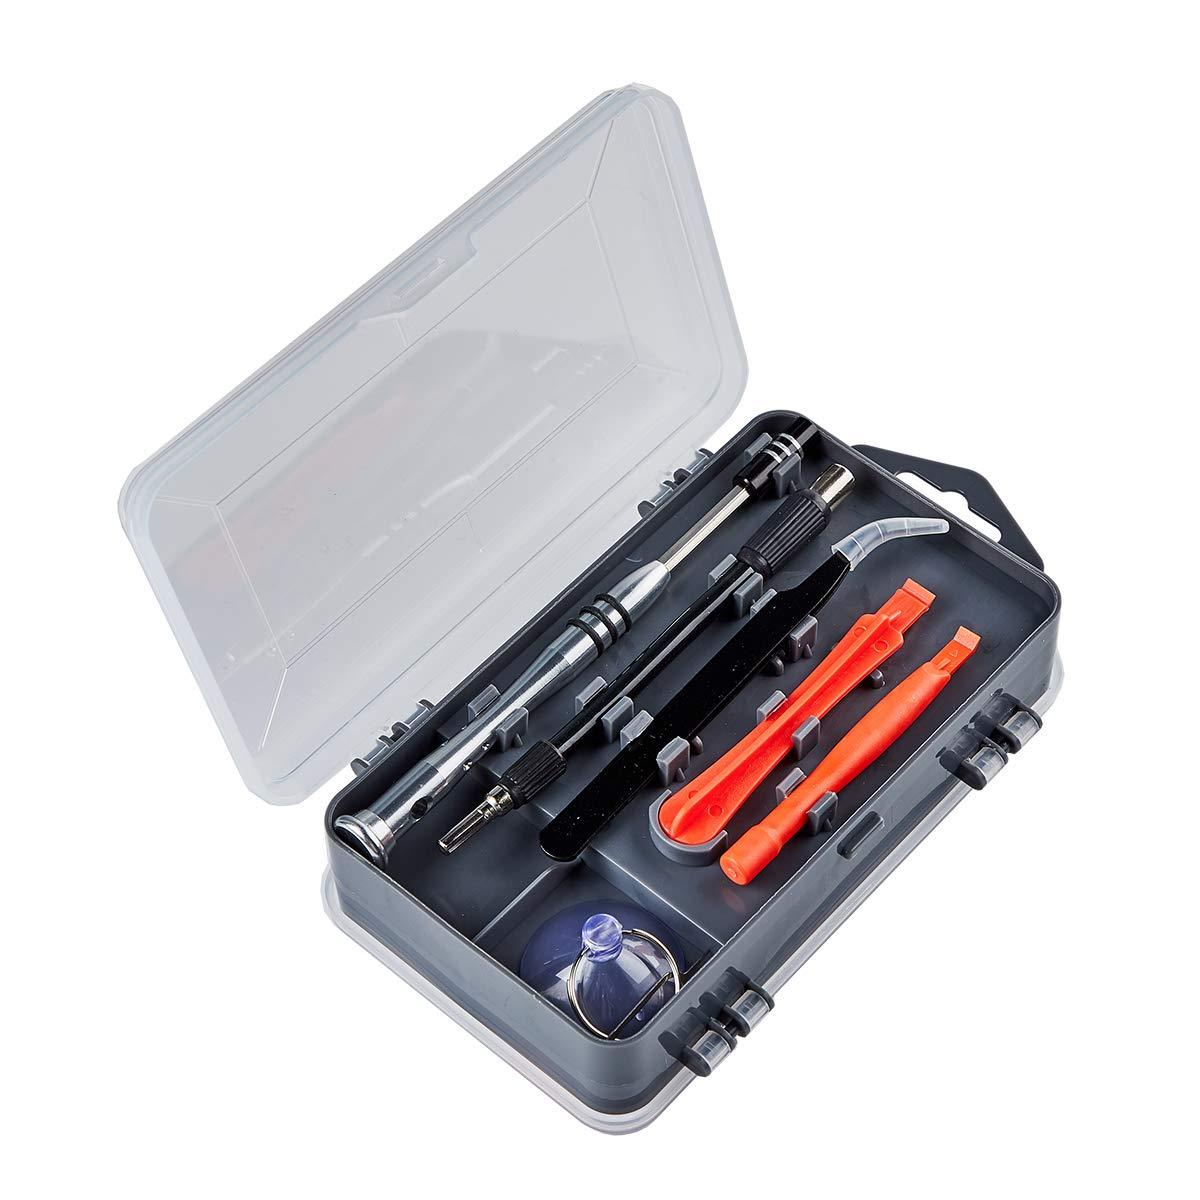 The Ultimate 112-in-1 Screwdriver Kit